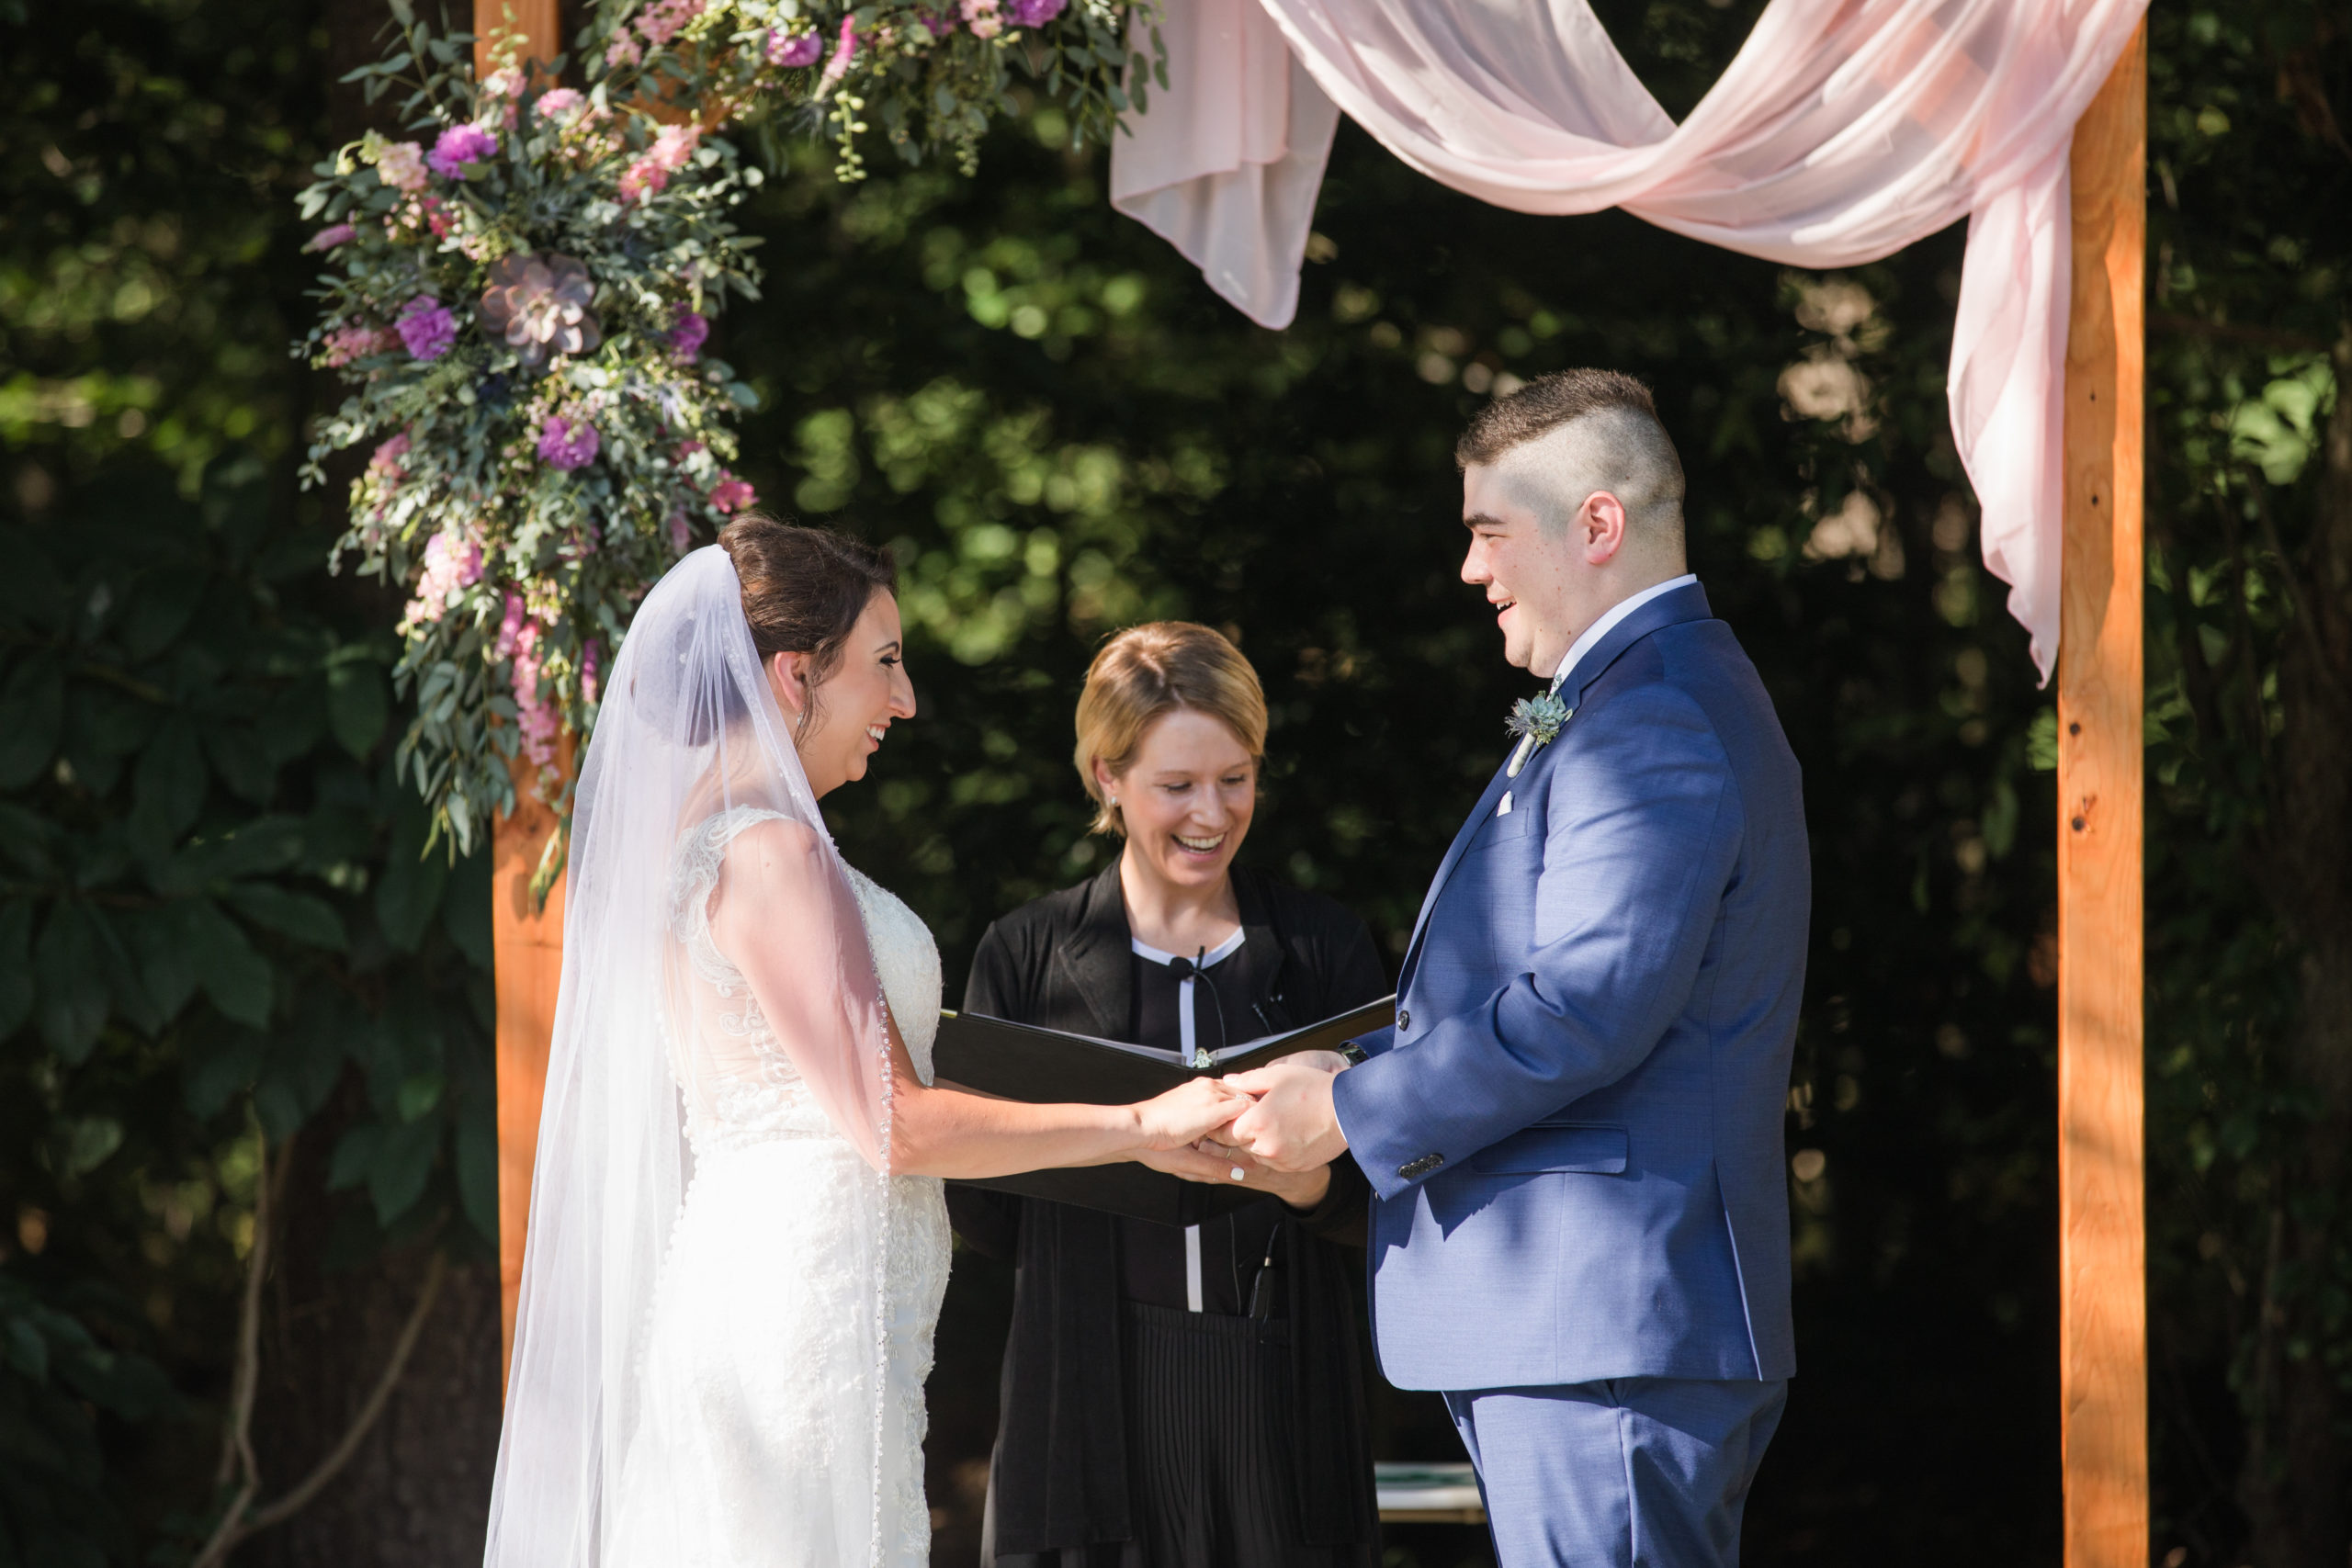 Rev. Michelle Gerlowski, Baltimore Wedding Officiant